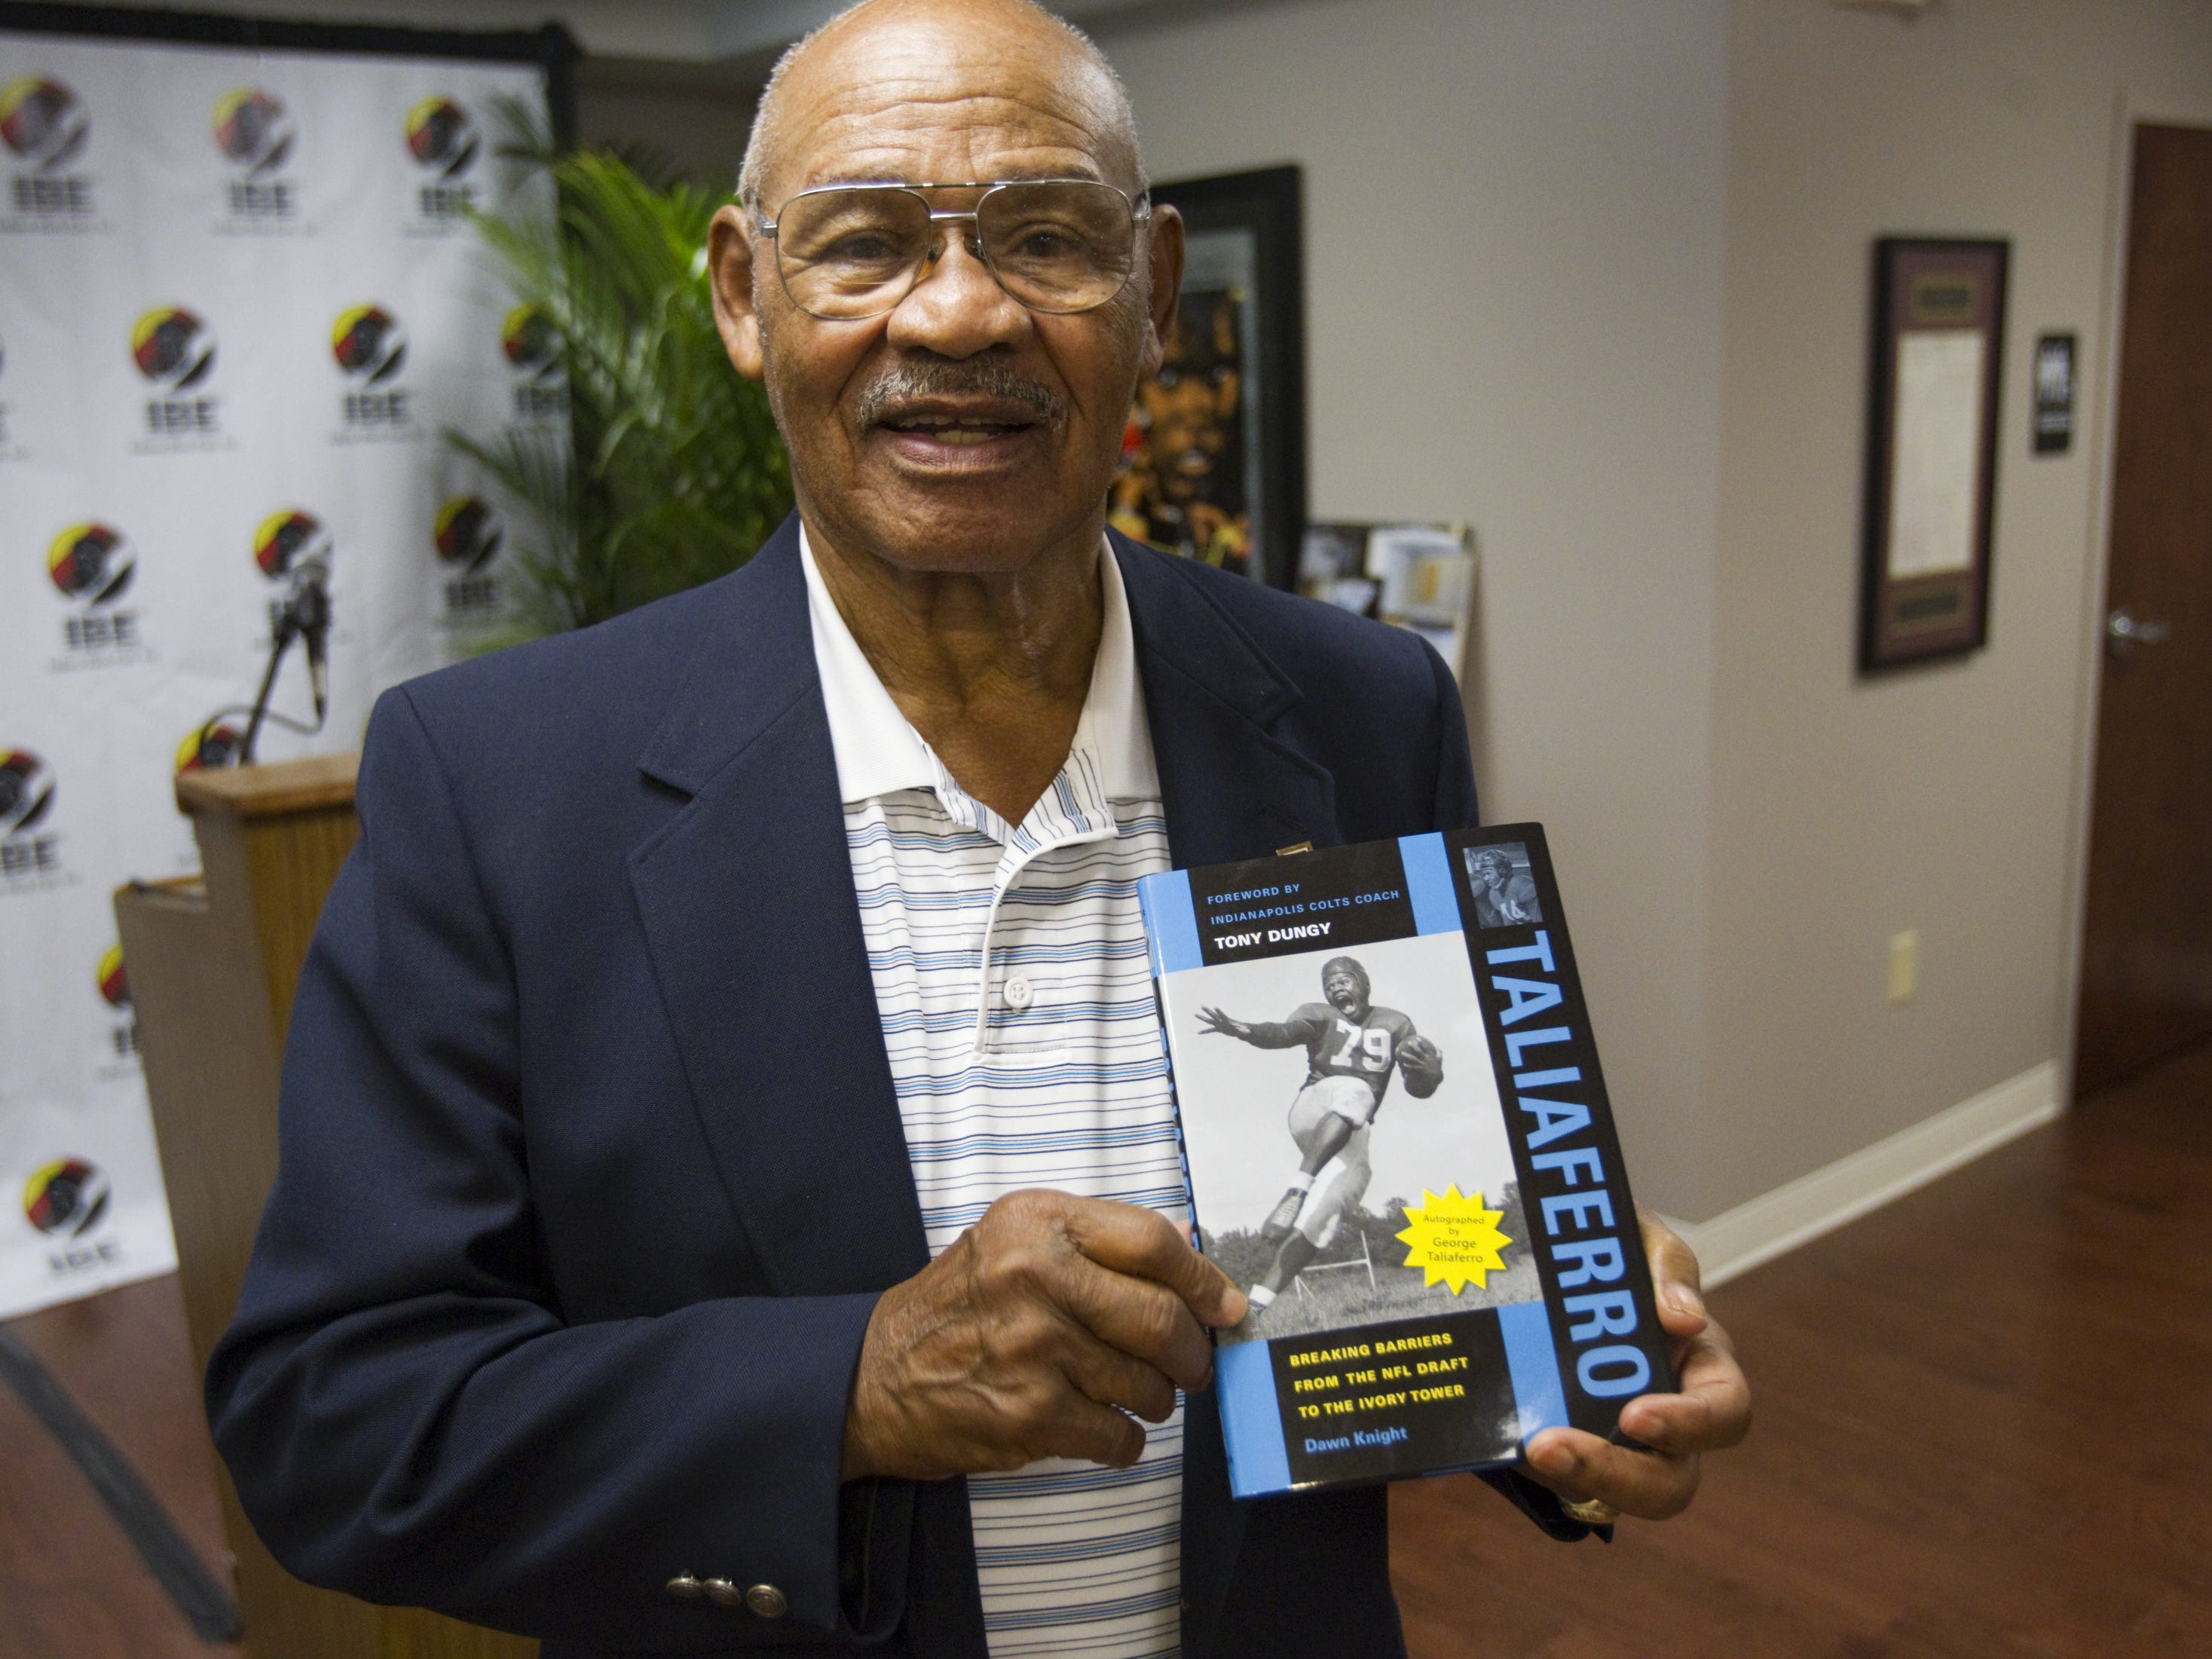 """George Taliaferro, 91, shown when he won the Major Taylor Award in Indianapolis in 2012, was the first African American drafted by the National Football League. The biography he is holding, """"Taliaferro,"""" includes a foreword by former Indianapolis Colts coach Tony Dungy. Robert Scheer/IndyStar"""